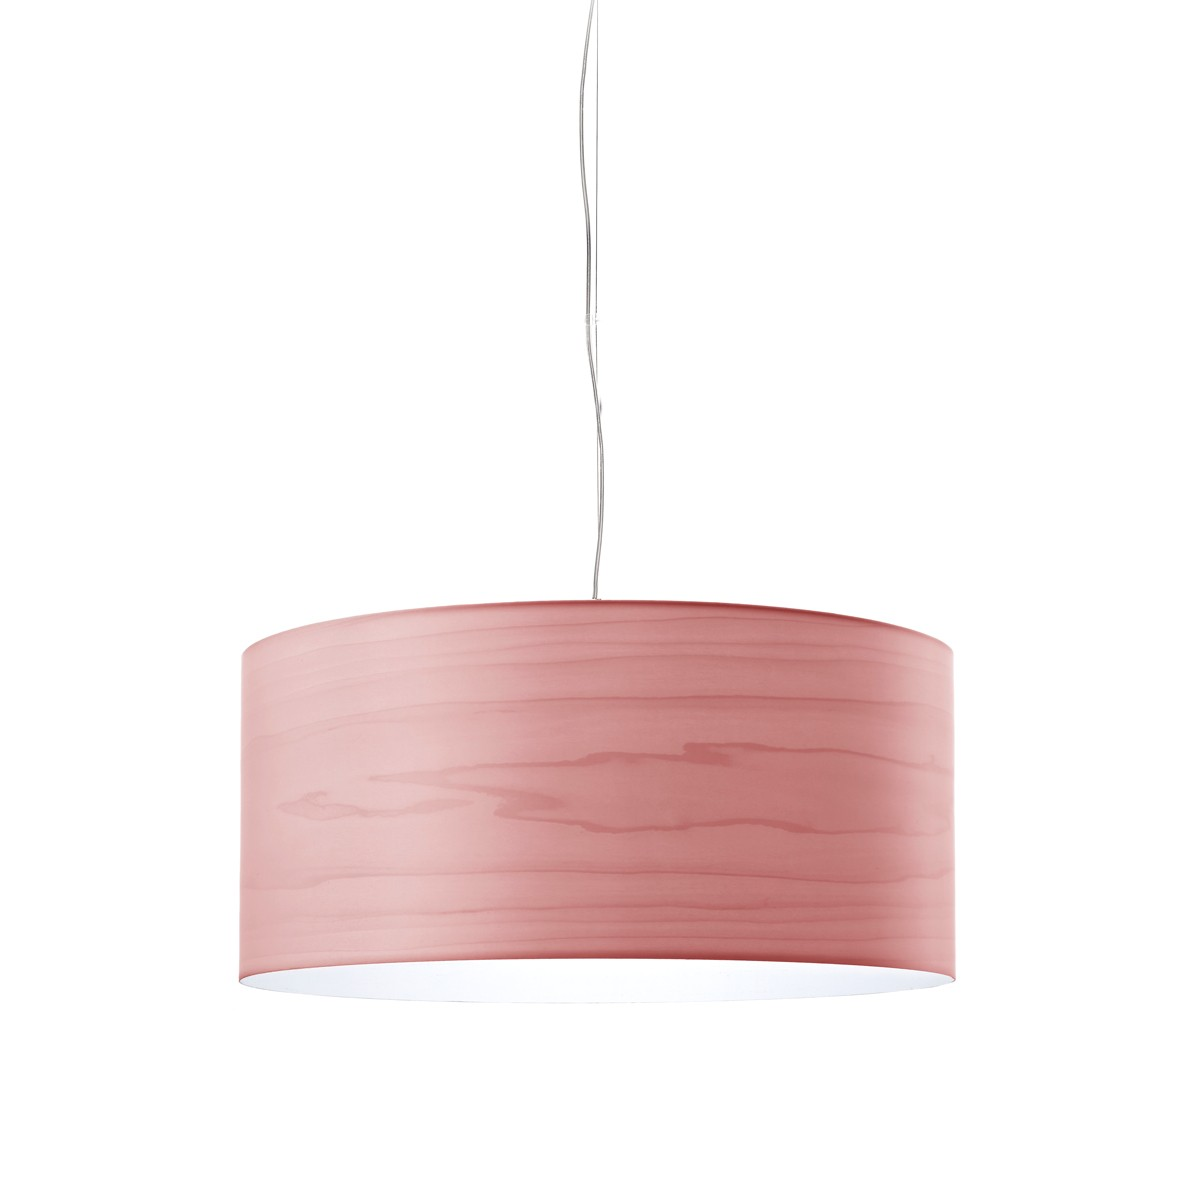 LZF Lamps Gea Small Pendelleuchte, pink